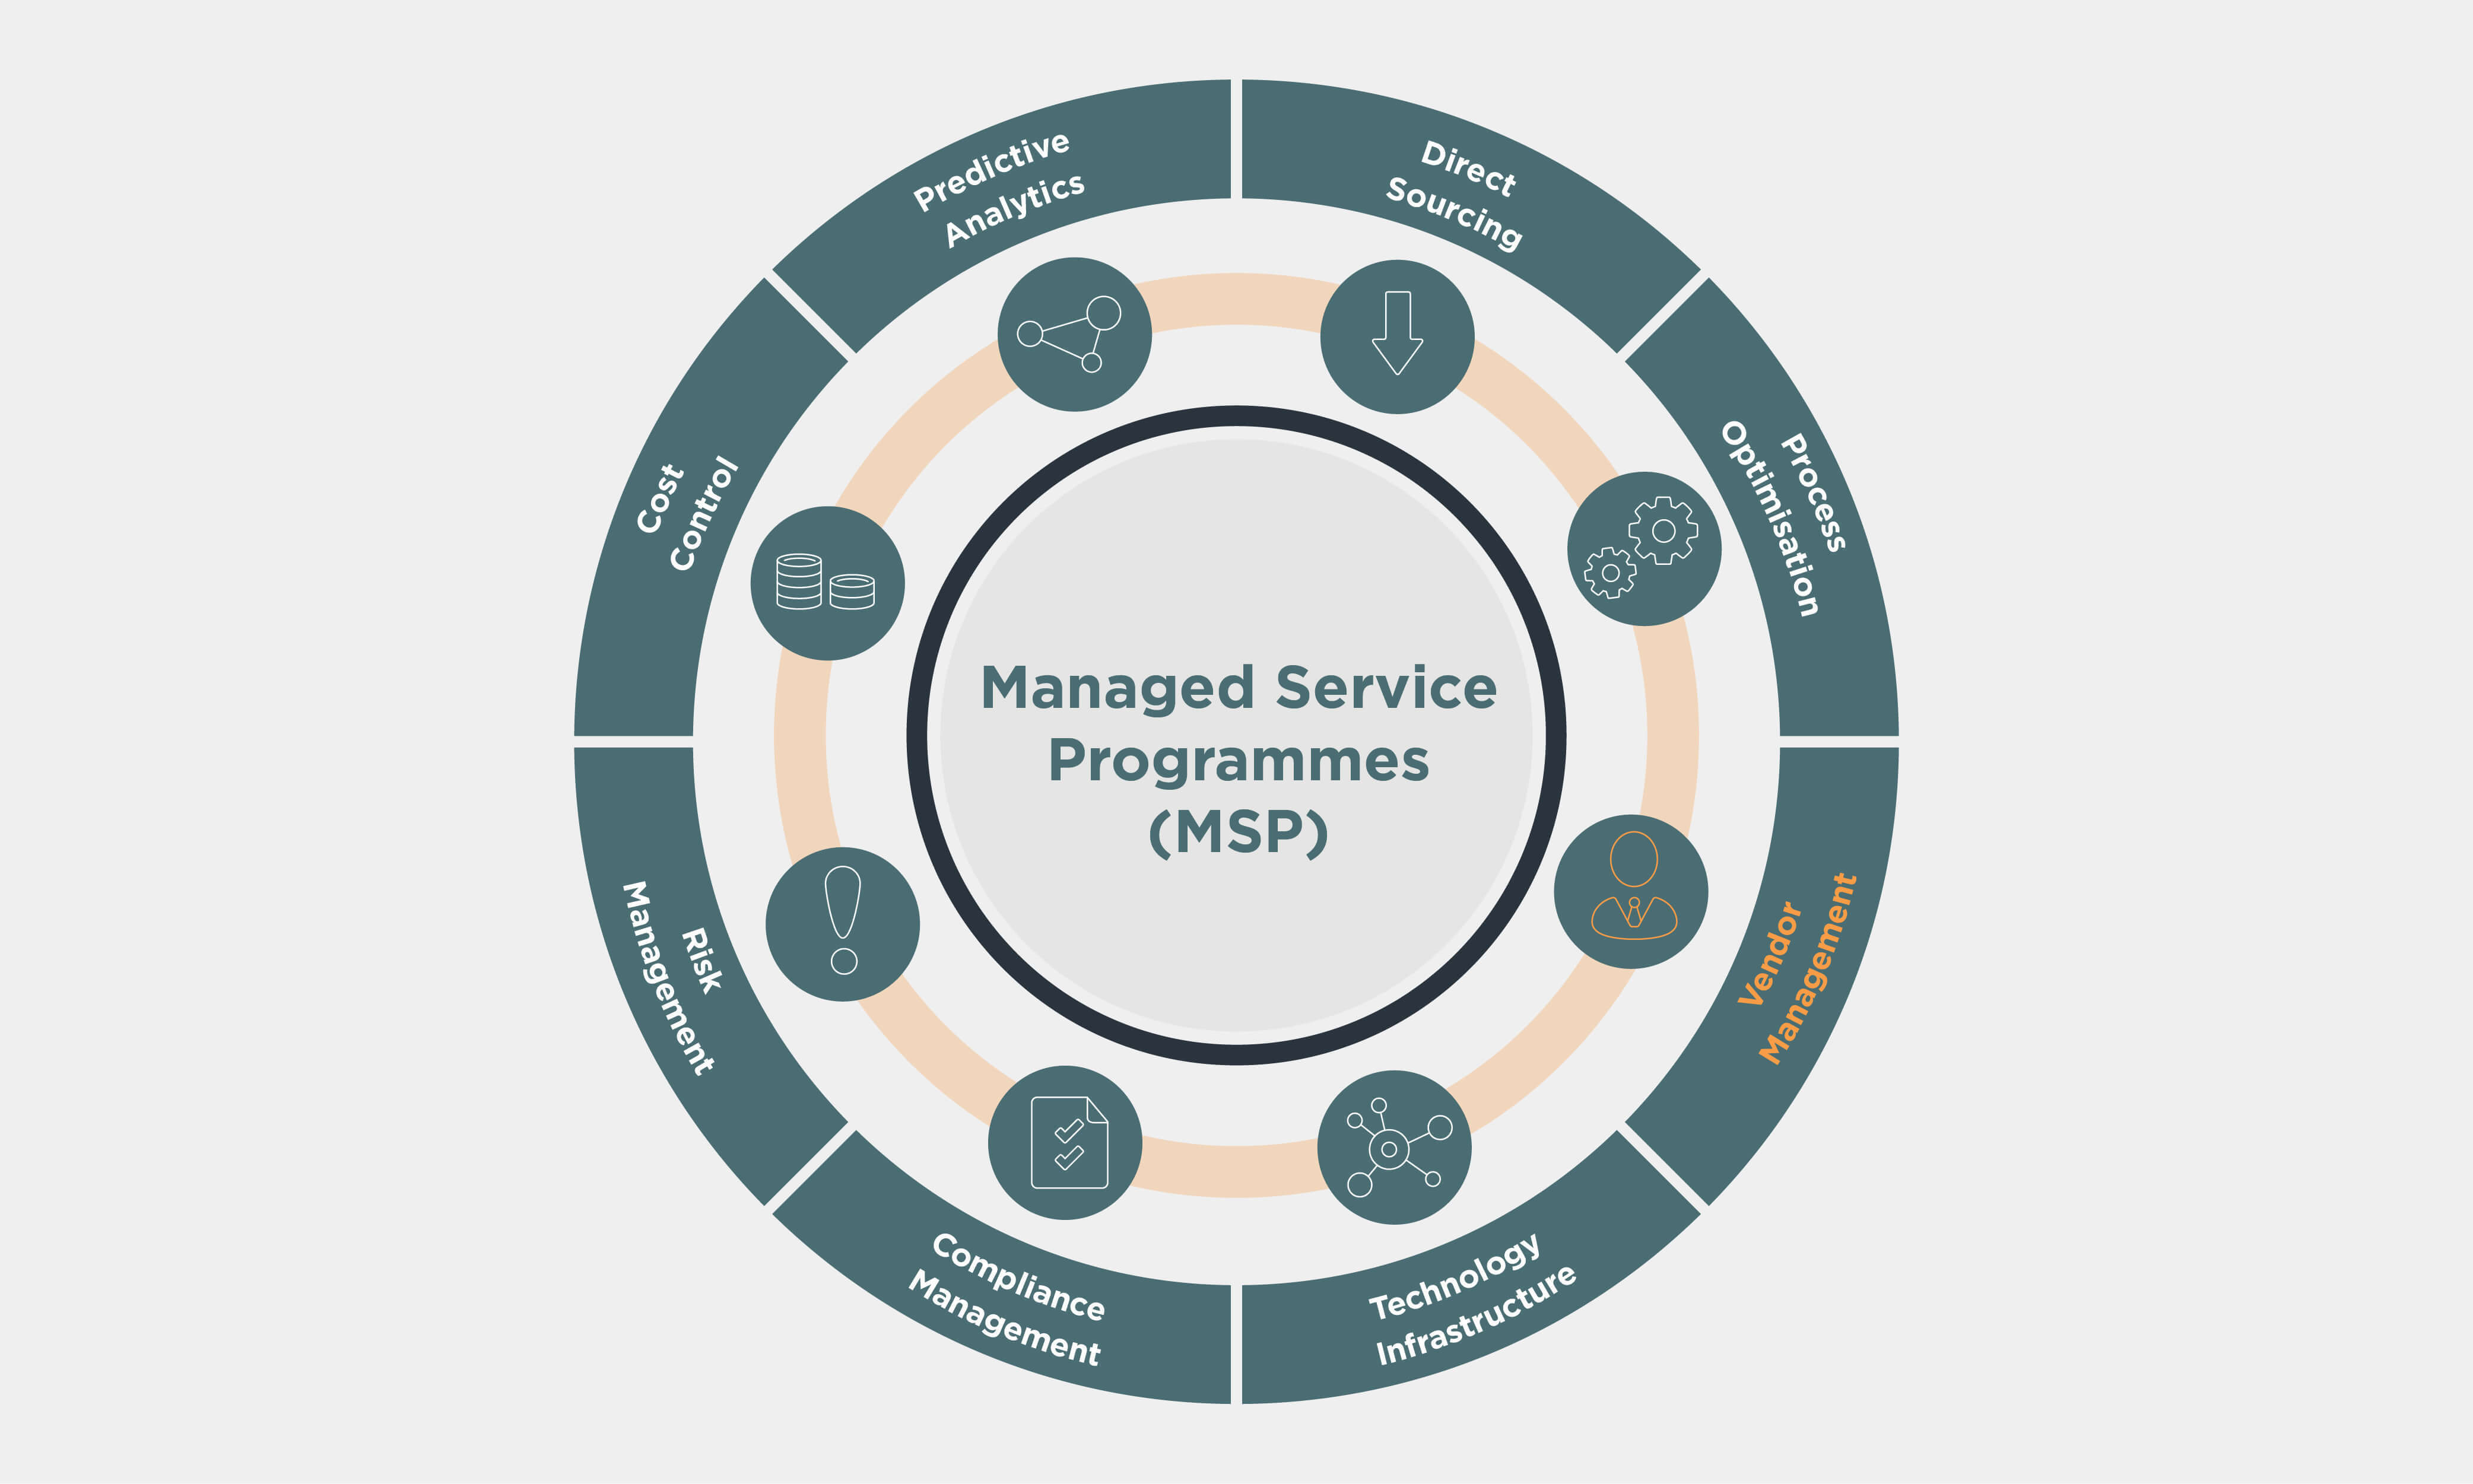 Managed Service Programmes (MSP) wheel with Vendor Management highlighted in orange